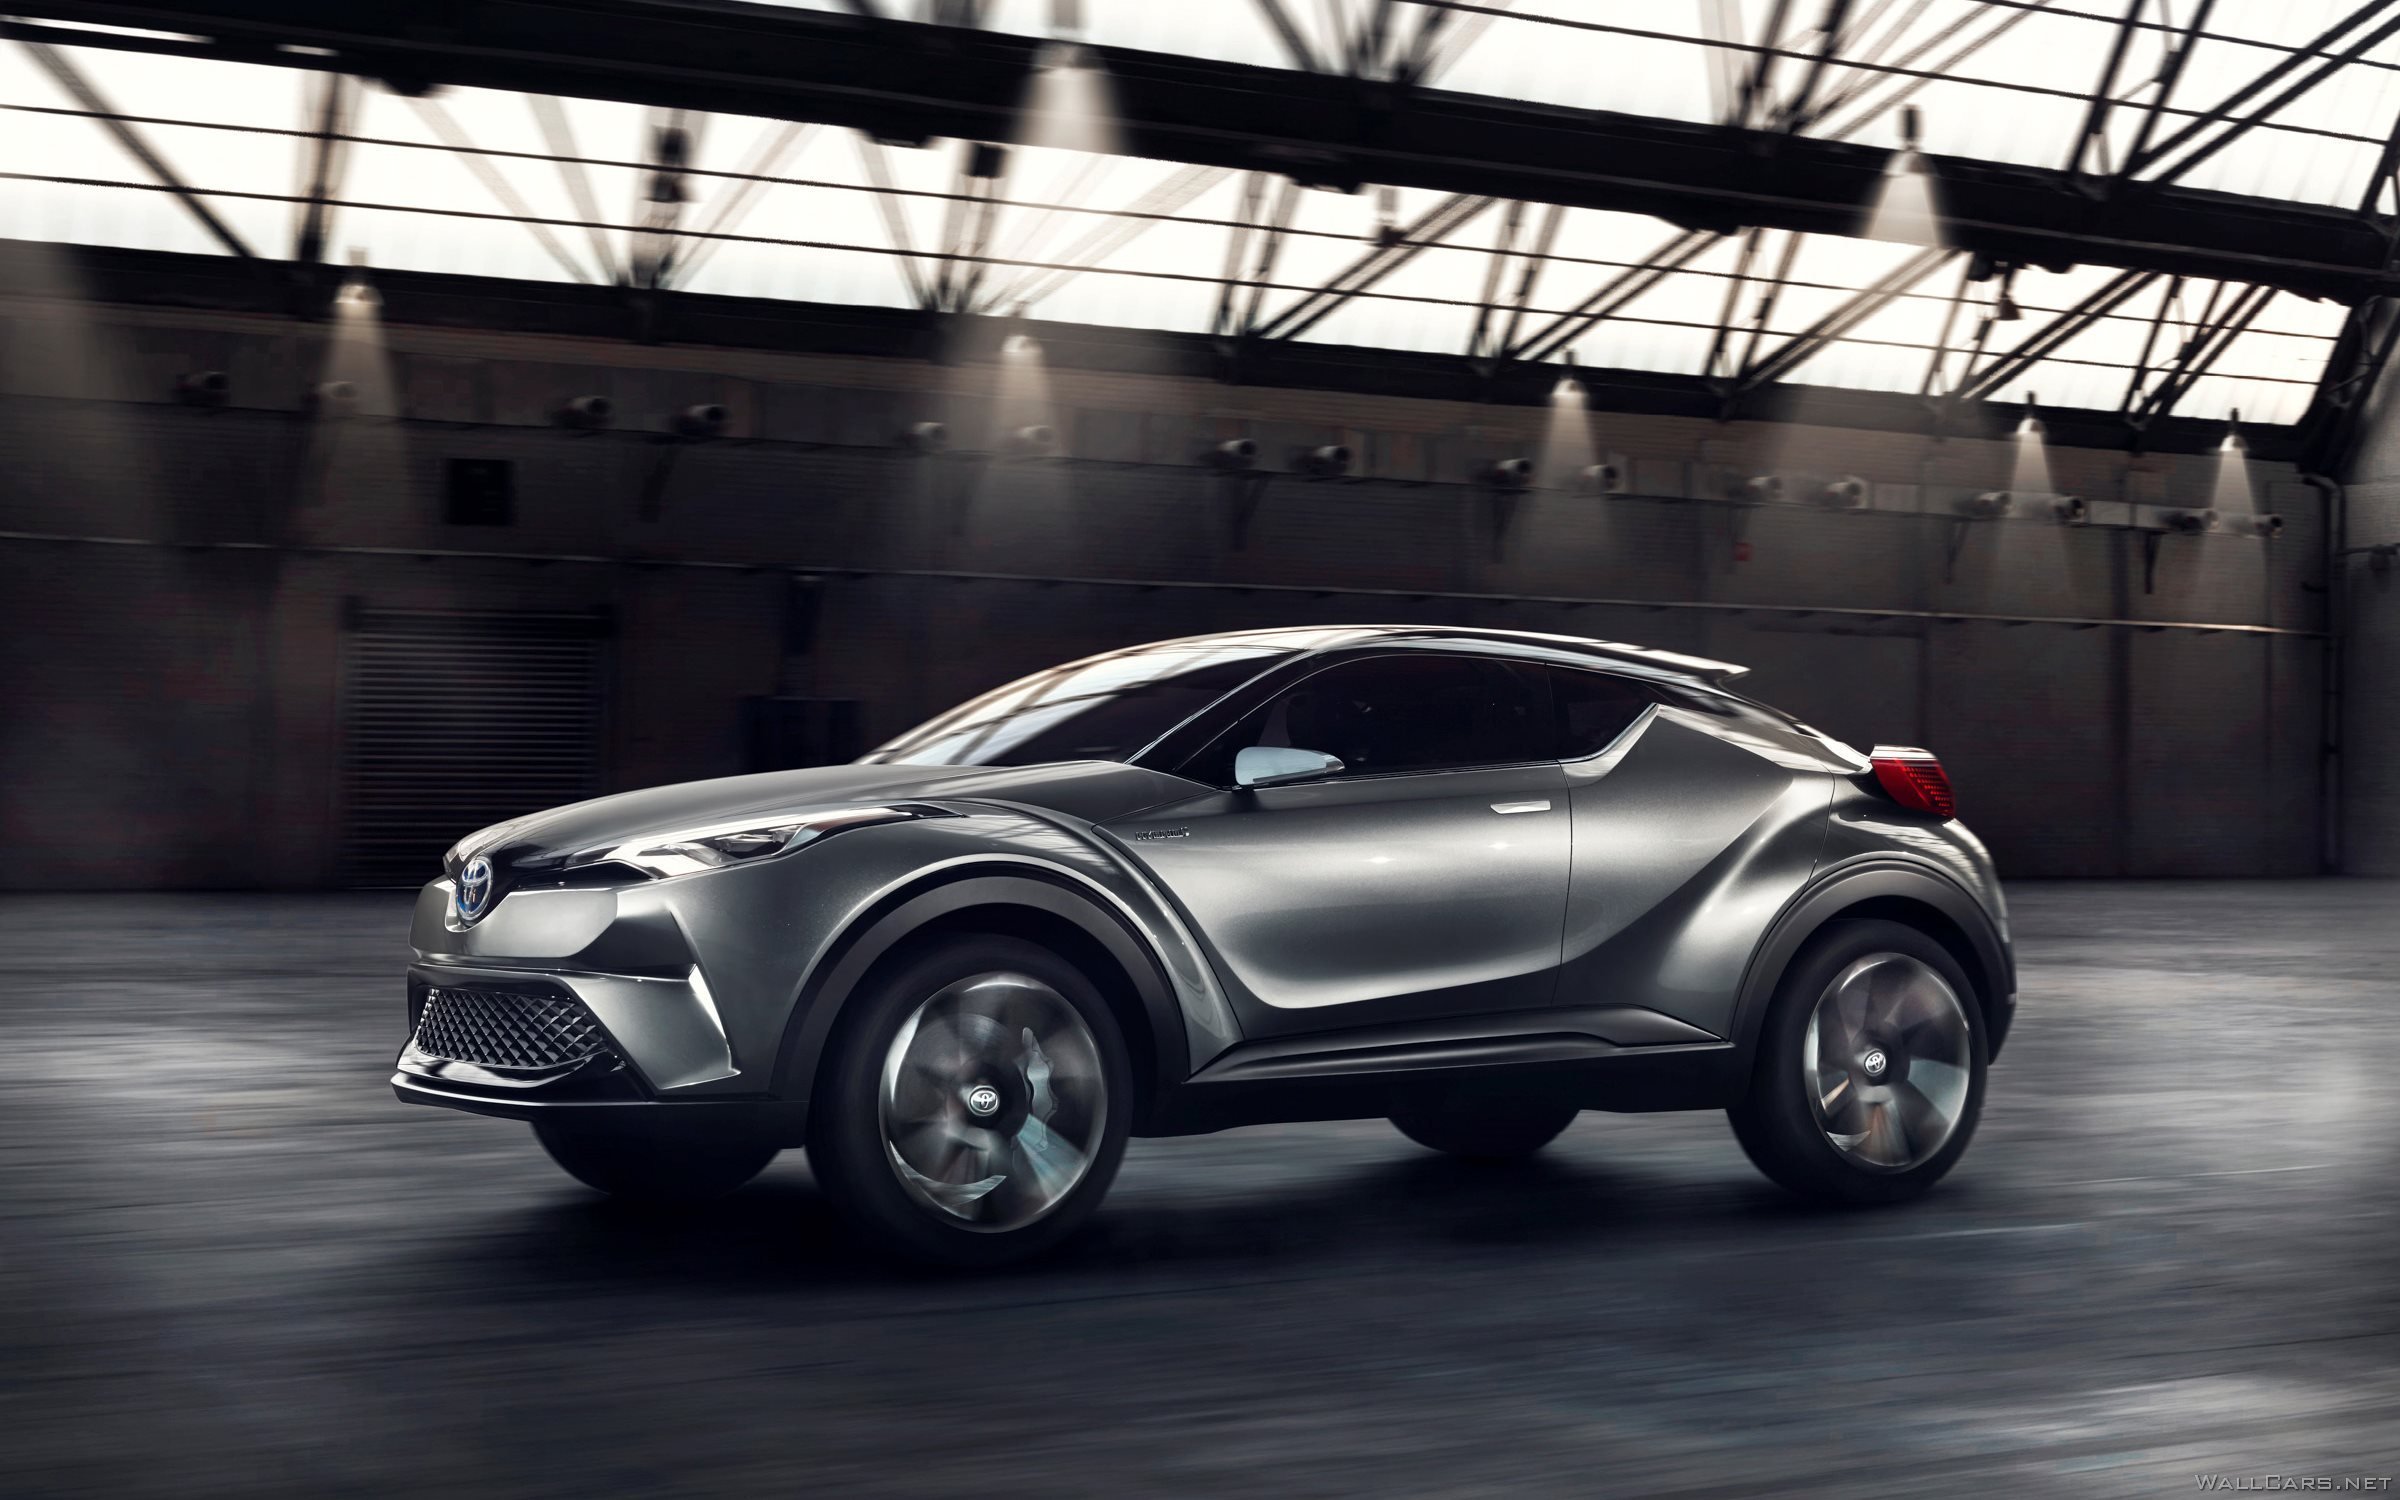 Silver Toyota C-HR Concept, 2015, motion, front, side, hood, headlights, future